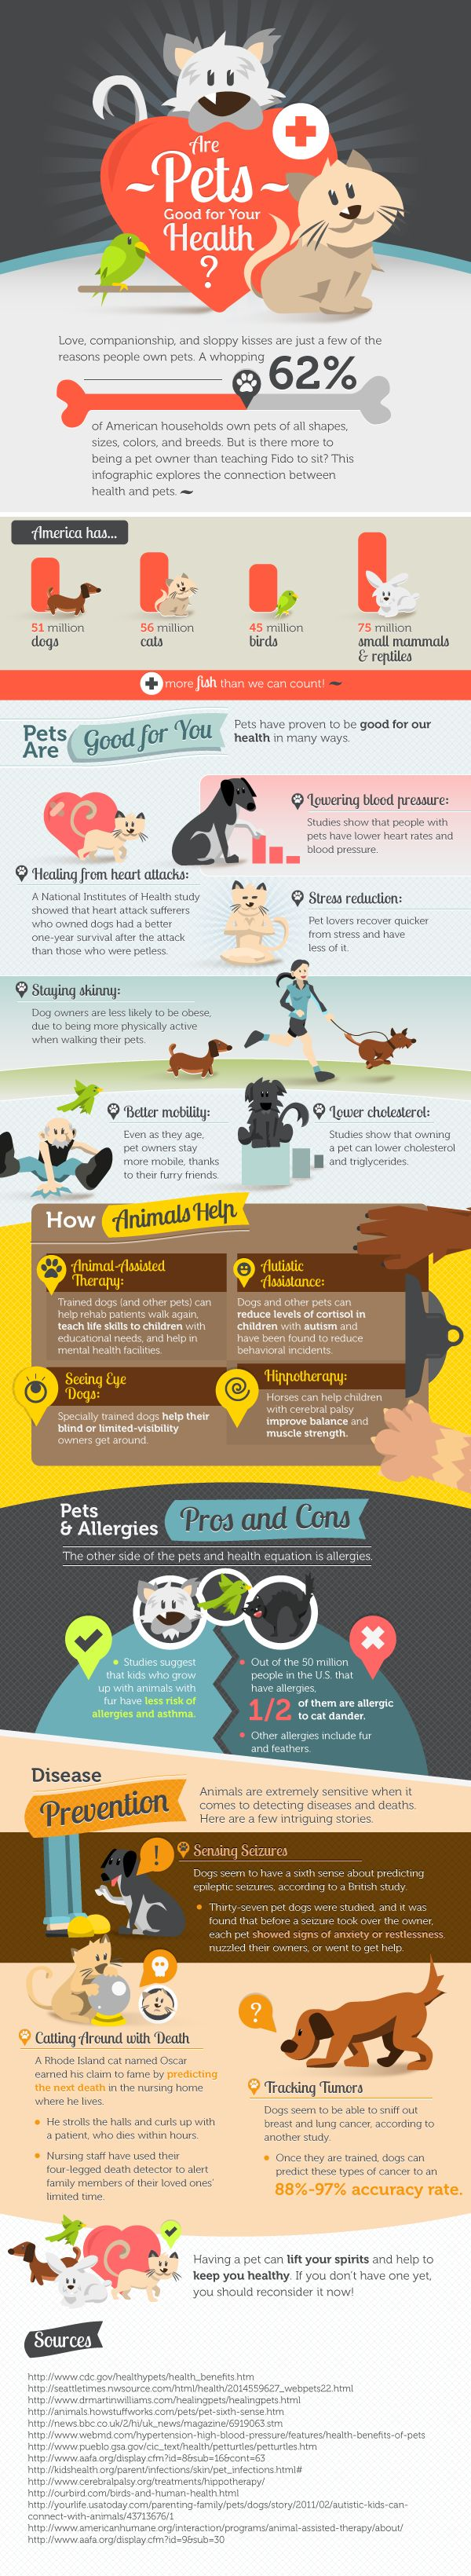 Pets have proven to be to be good for our health in many ways. Check out this infographic.  And for all your pet's needs -  visit our website at petstore.com #pets #dogs #cats: Pethealth, Infographic Animal, Pet Health, Health Benefits, Health Infographic, Fur Baby, Info Graphics, Infographic Parks, Furry Friends